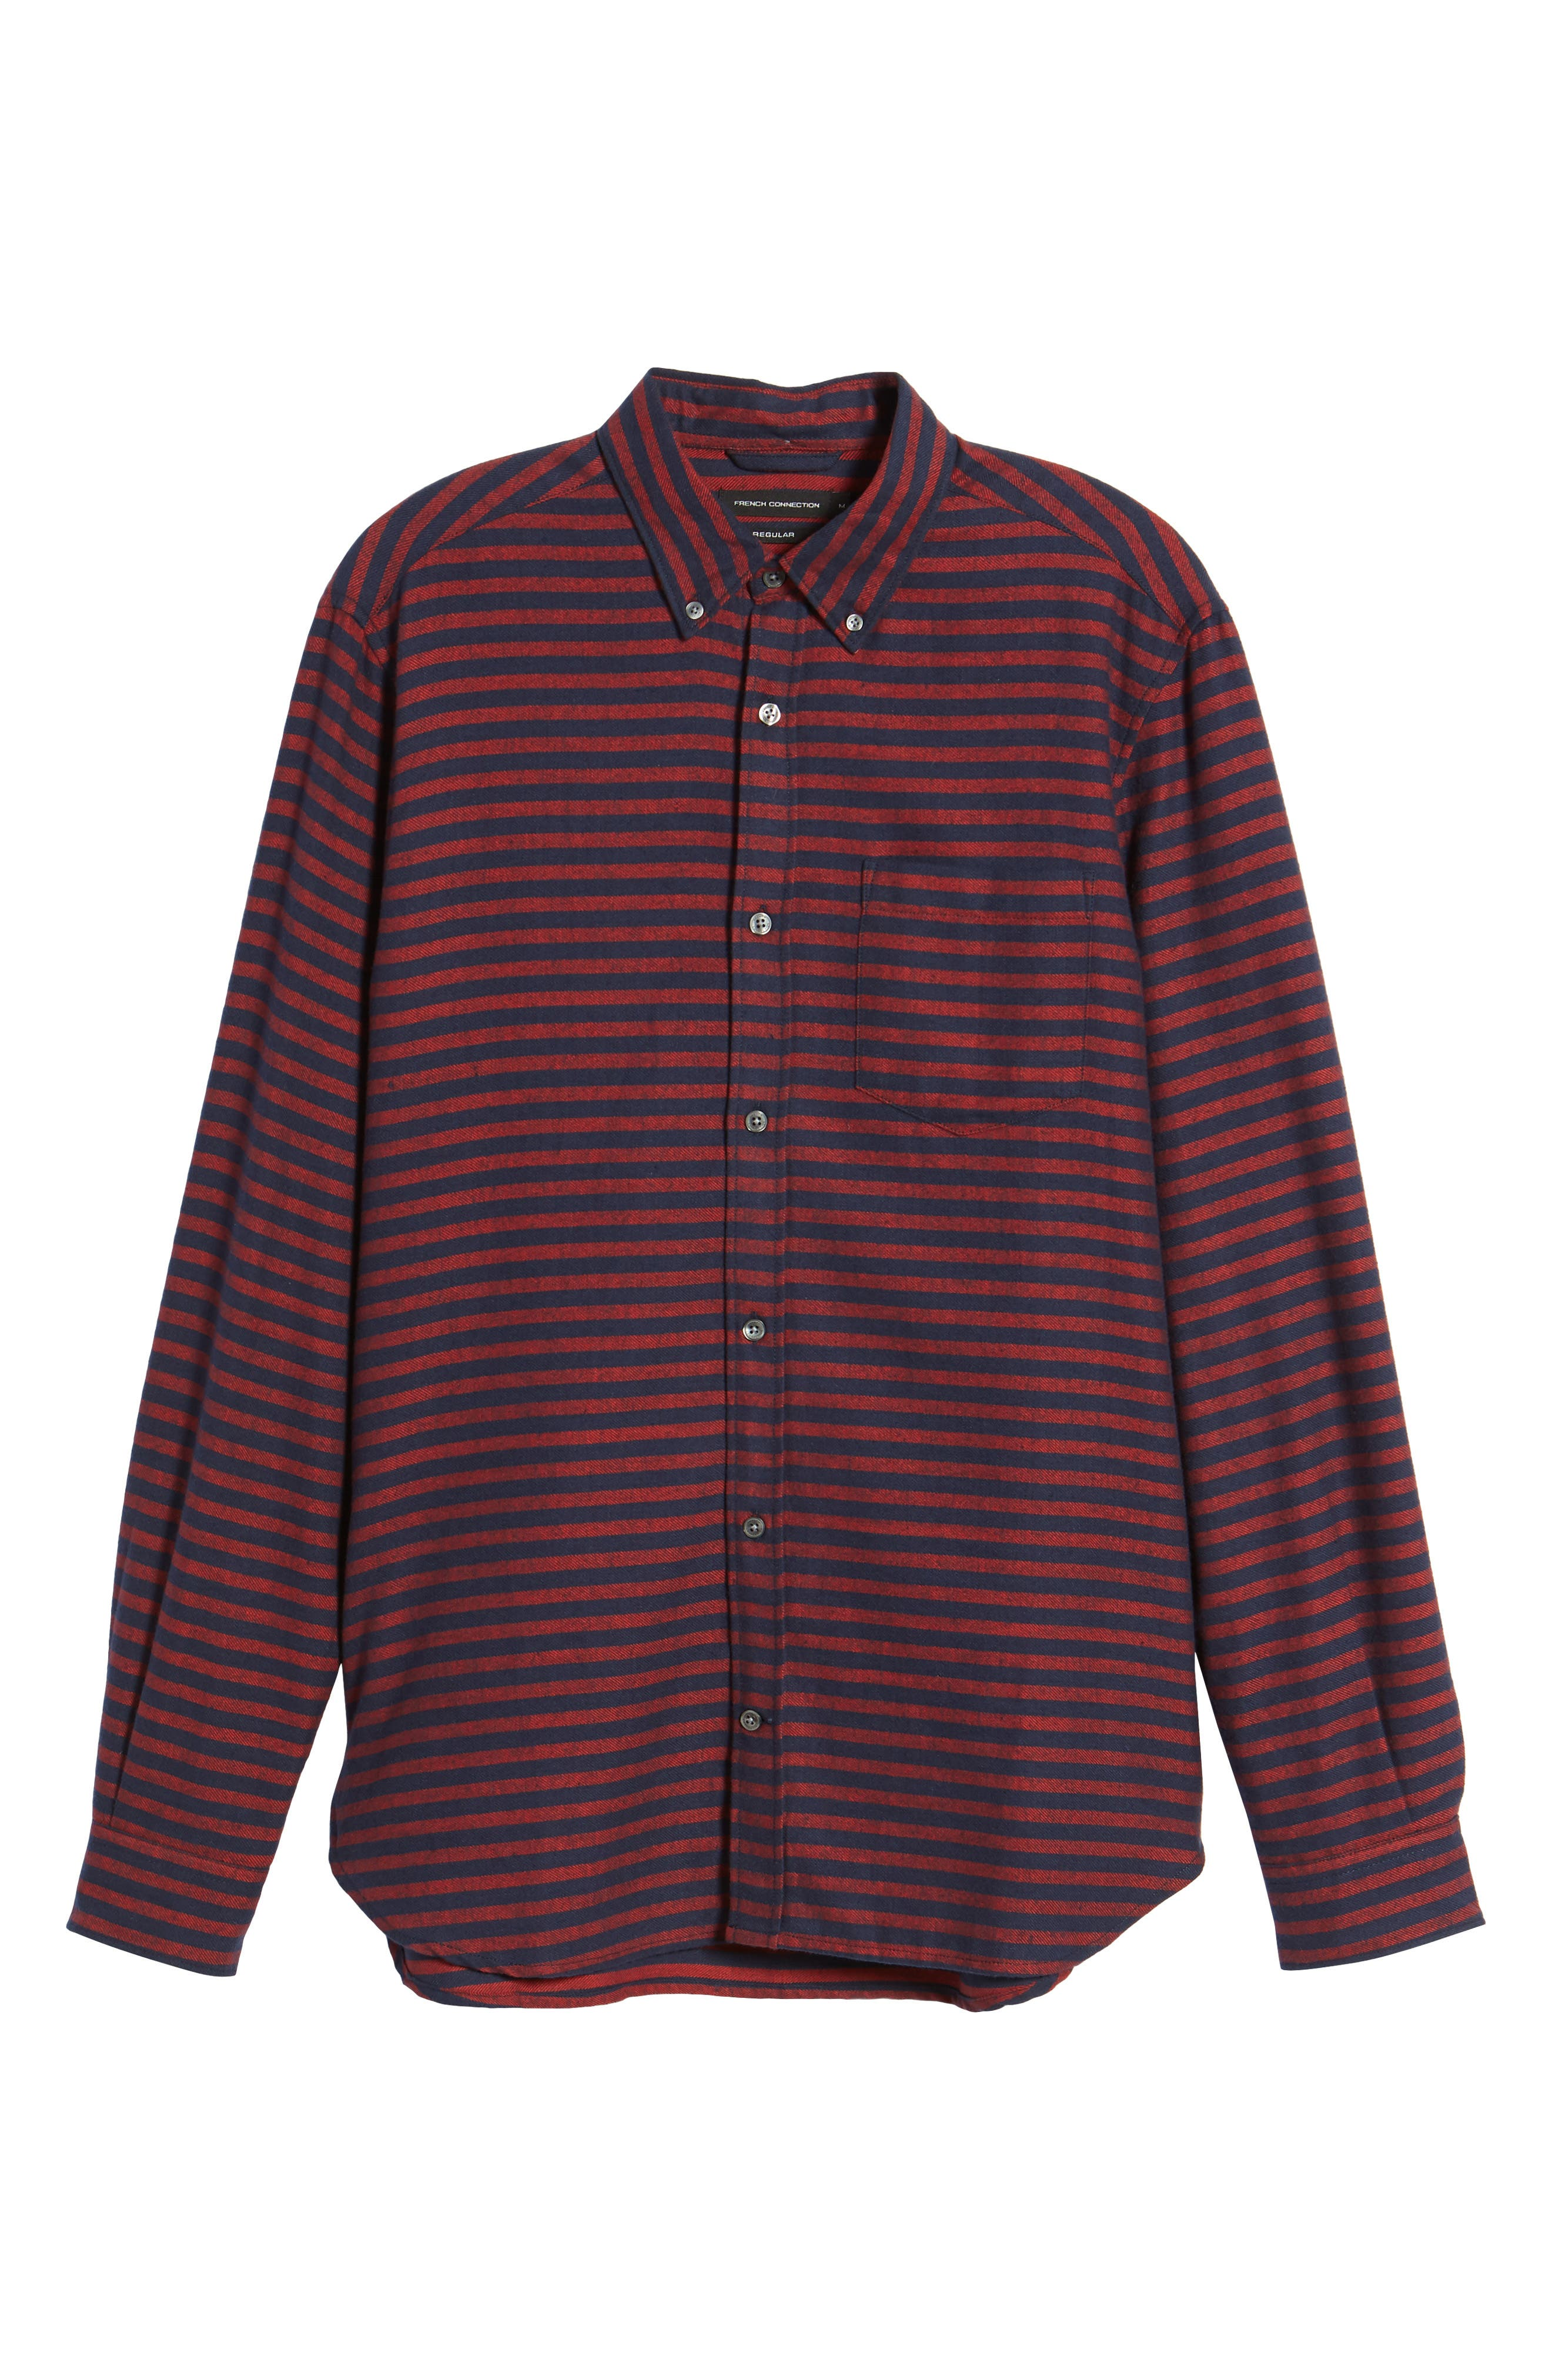 Regular Fit Stripe Flannel Shirt,                             Alternate thumbnail 6, color,                             930